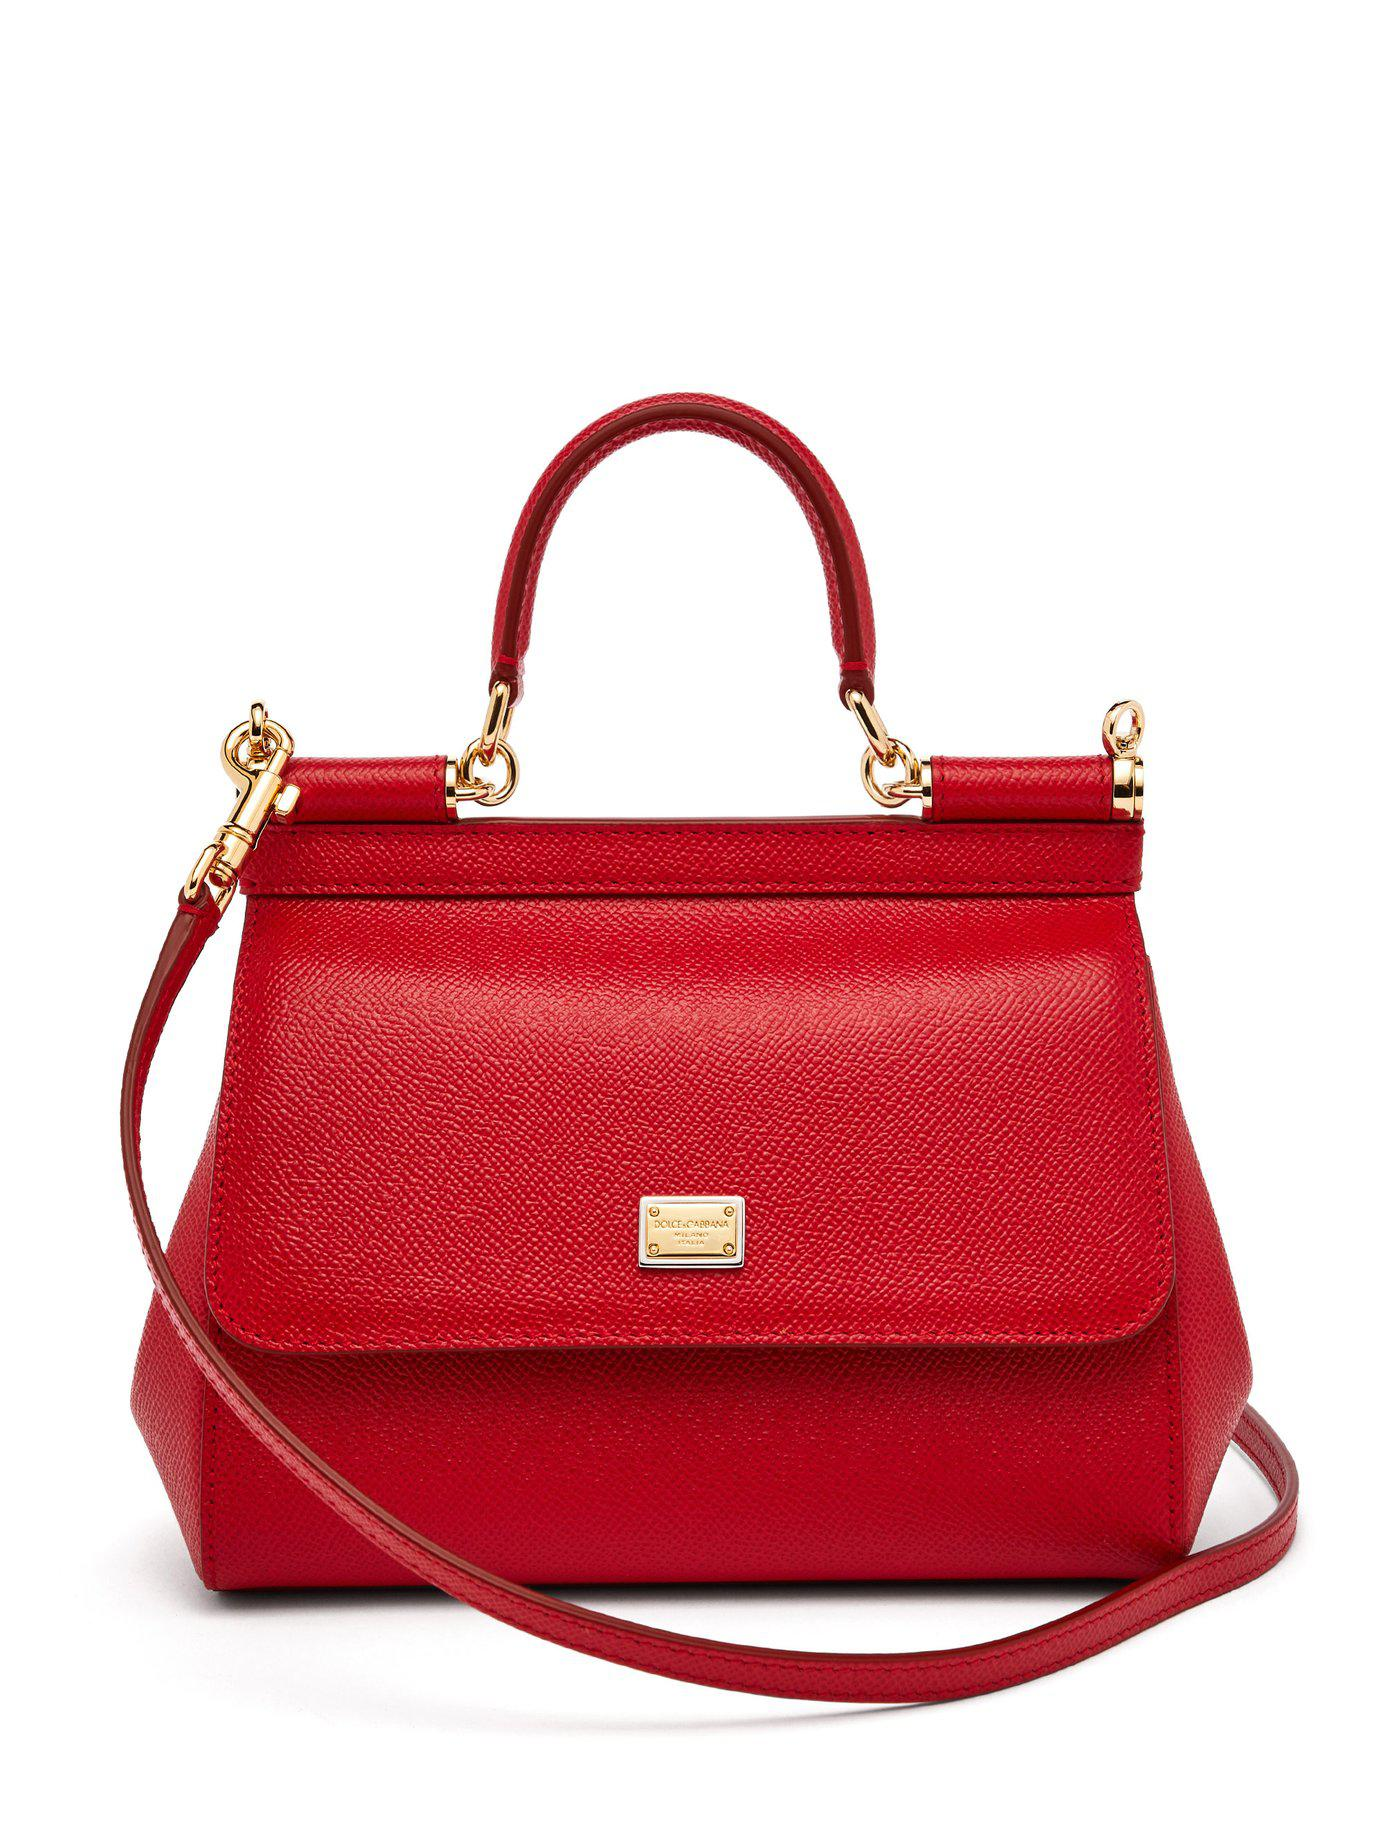 a8a475fddb Lyst - Dolce   Gabbana Sicily Small Dauphine Leather Bag in Red